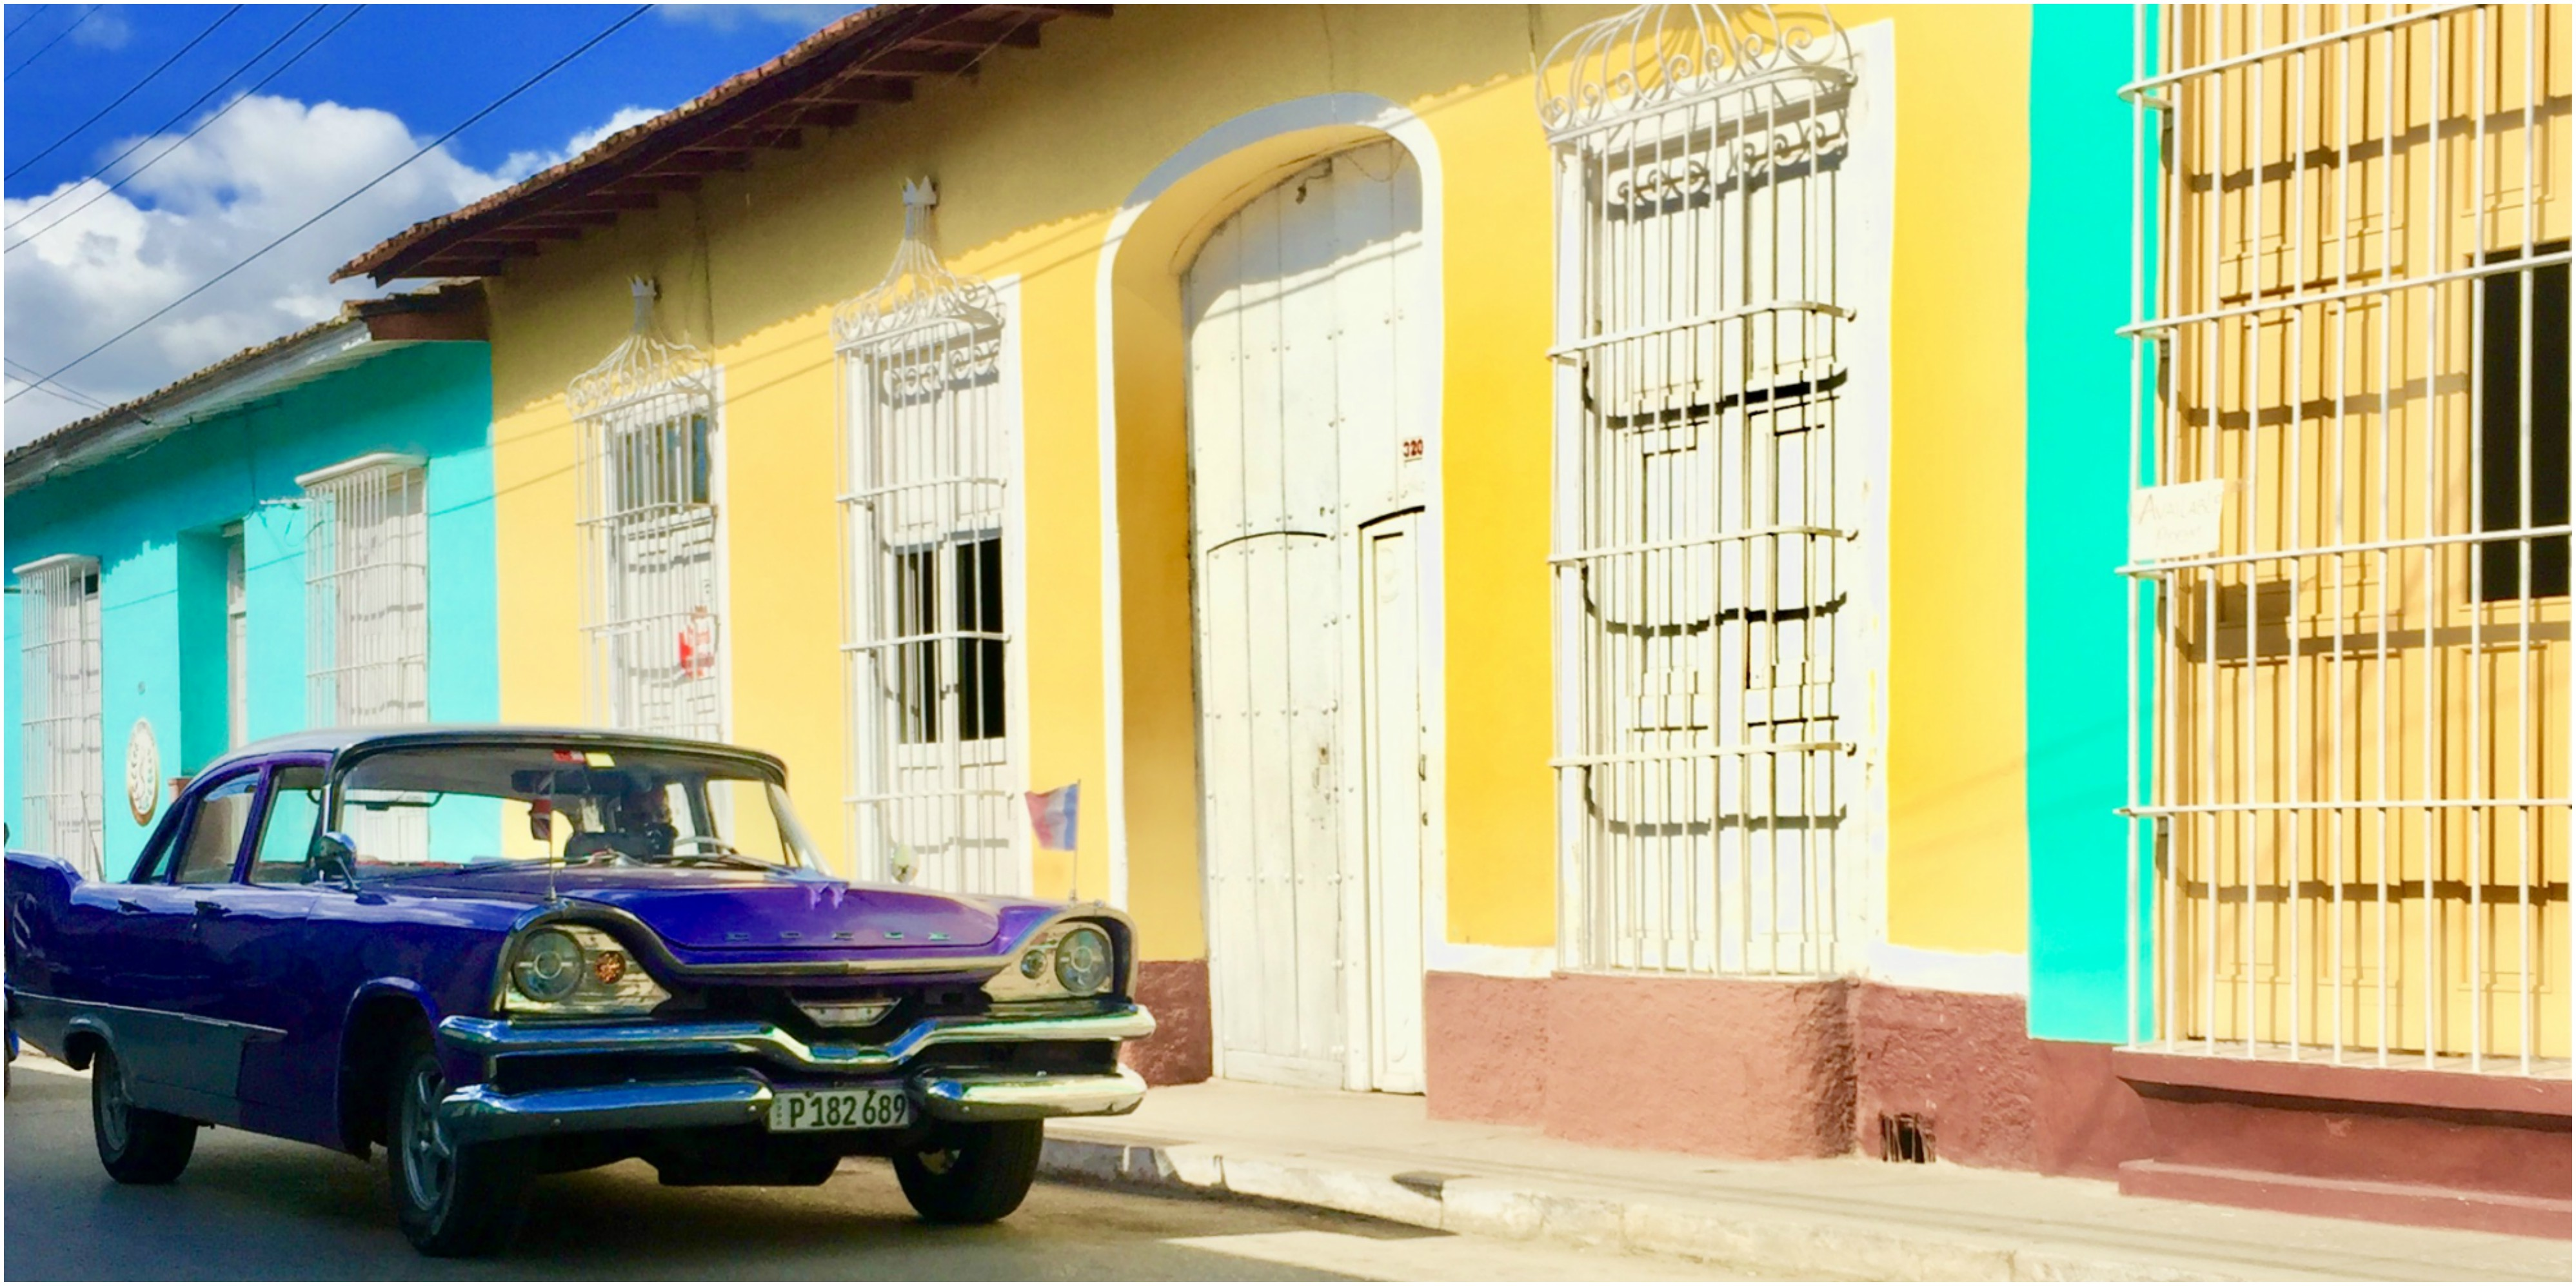 cuba-trinidad-plaza-major-visit-voiture-americaine